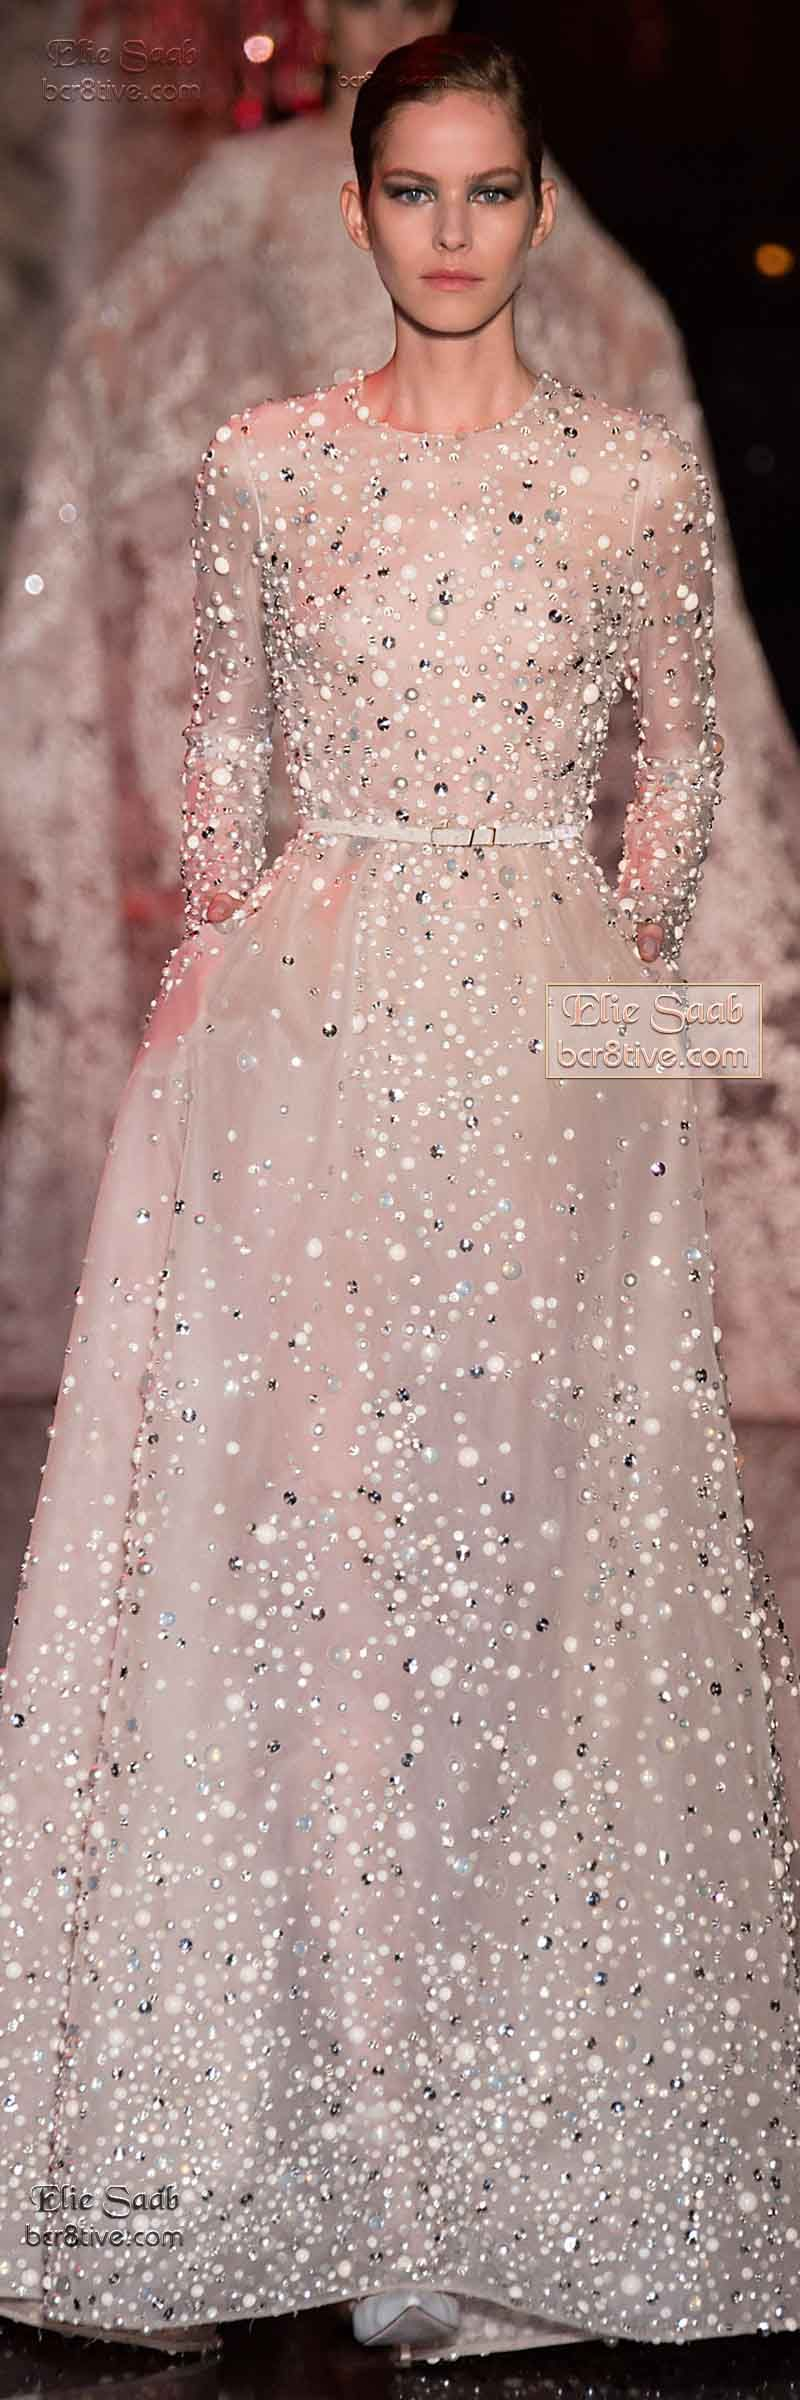 Elie Saab Fall Winter 2014-15 Couture | Alta costura, Vestiditos y ...